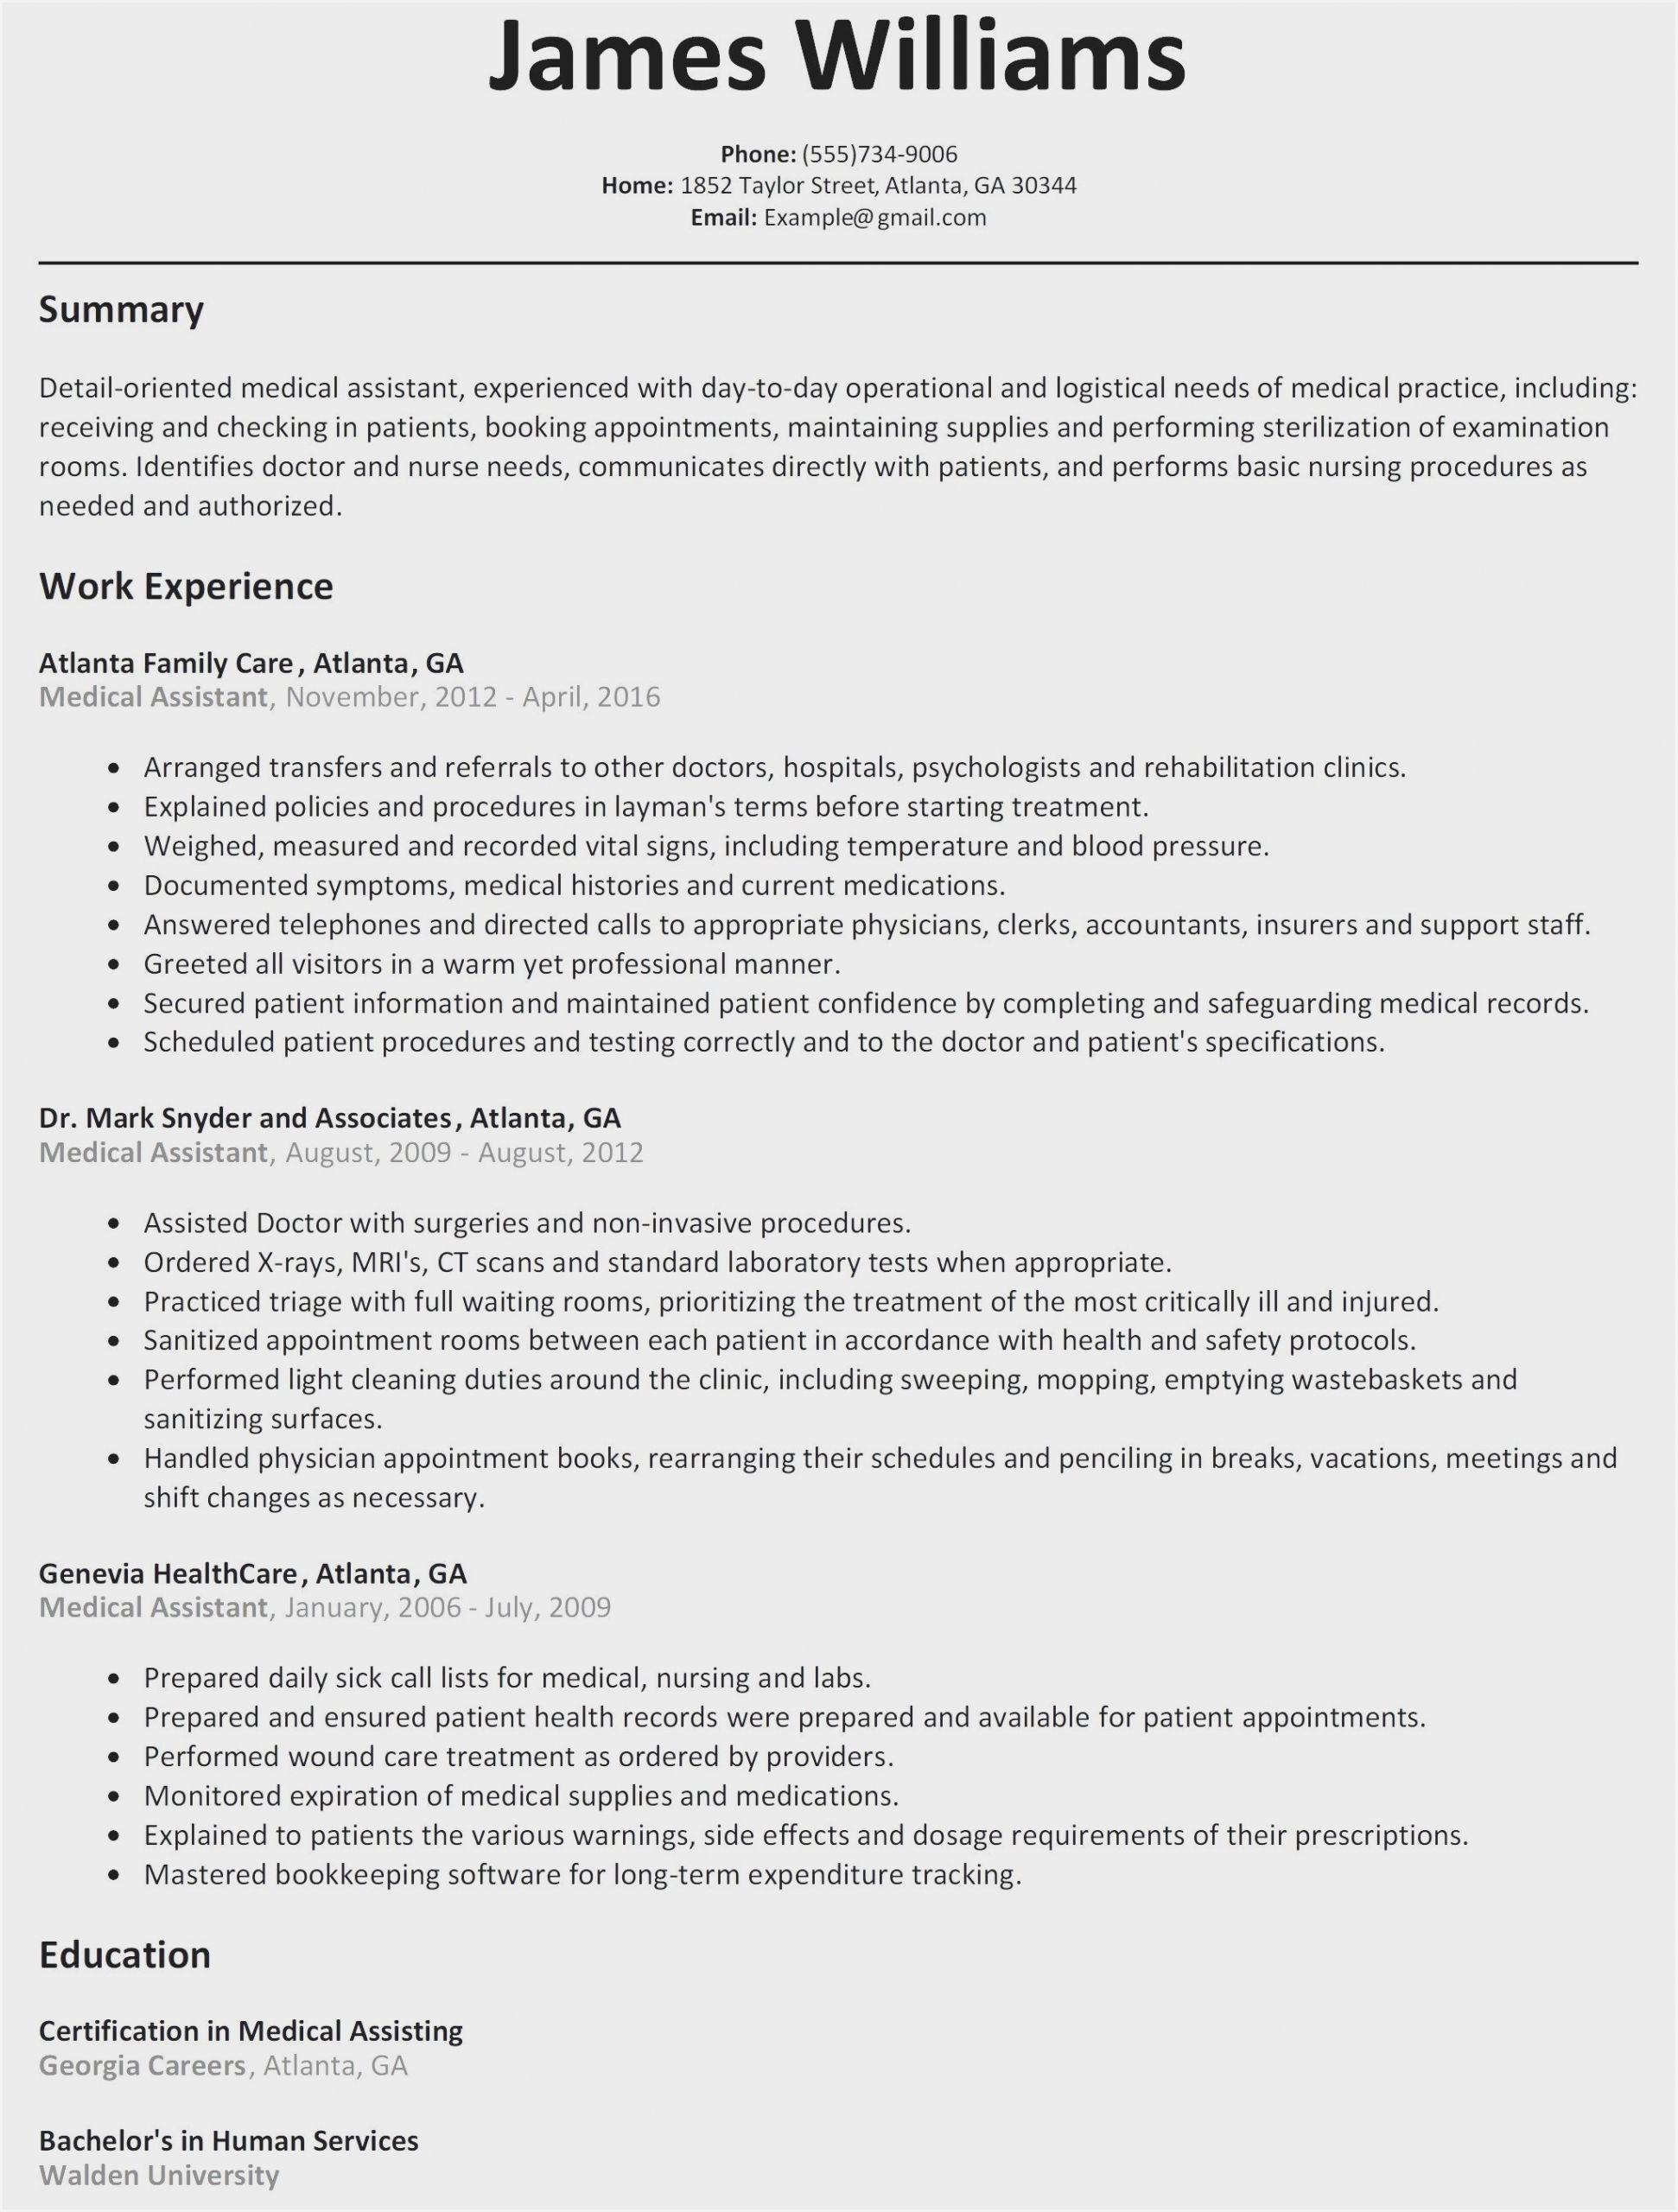 resume sample for rn new graduate lpn pdf scaled librarian procurement buyer pharmacist Resume New Graduate Rn Resume Sample